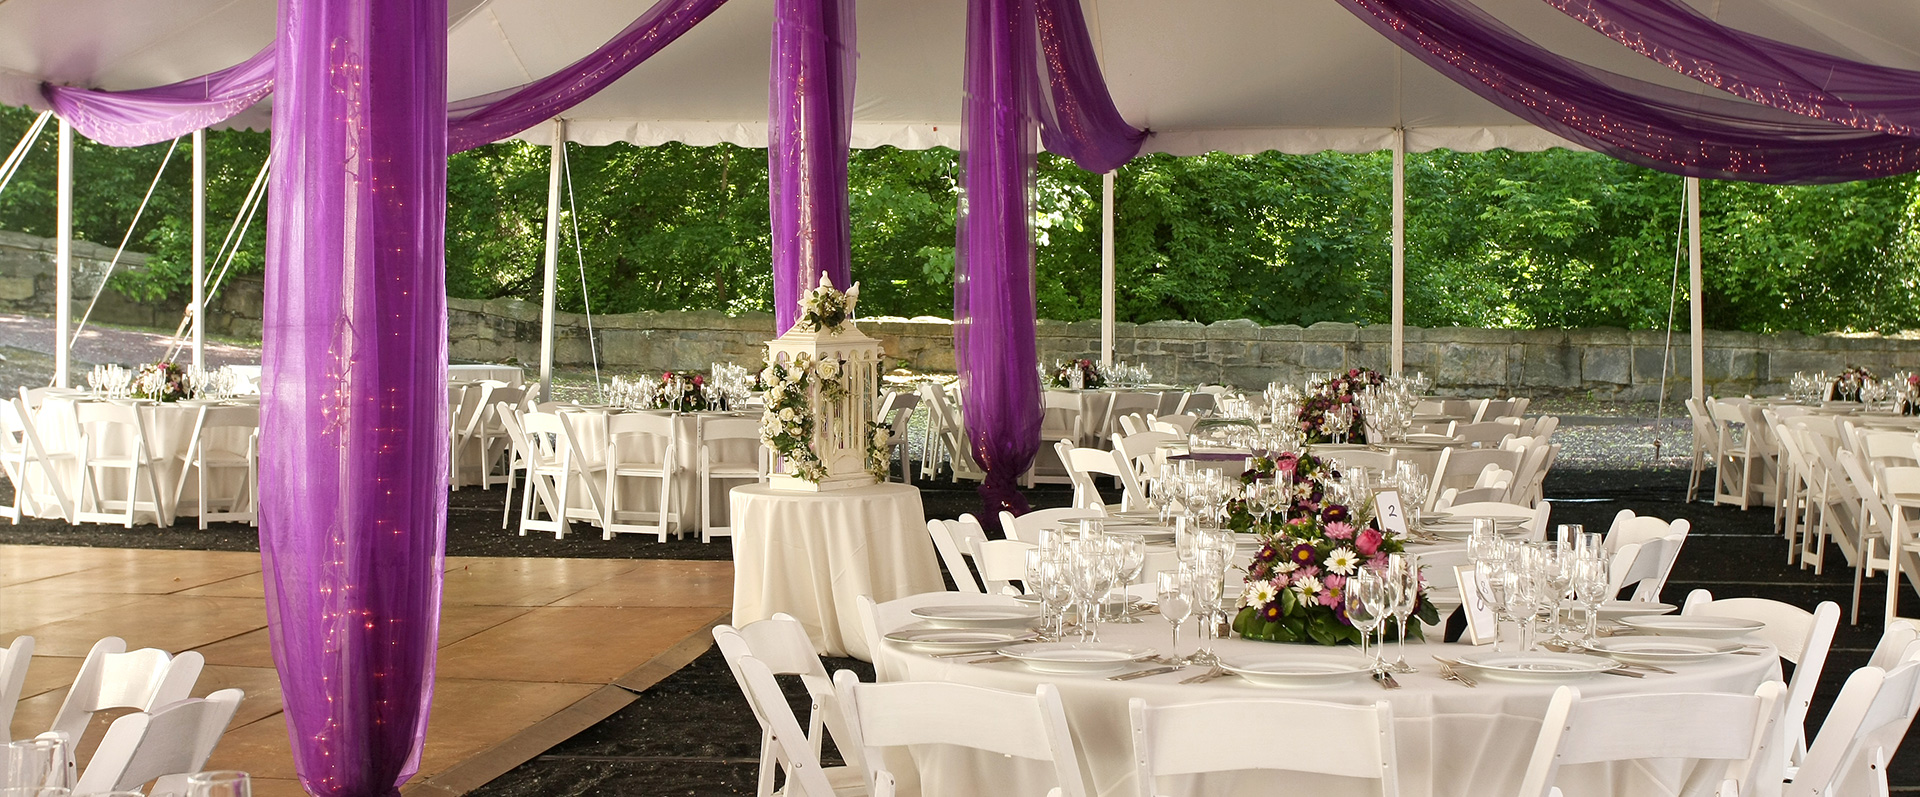 Party Tent Rental & Bakos Party Rentals: Owensboro KY: Event Wedding Tents Chairs ...